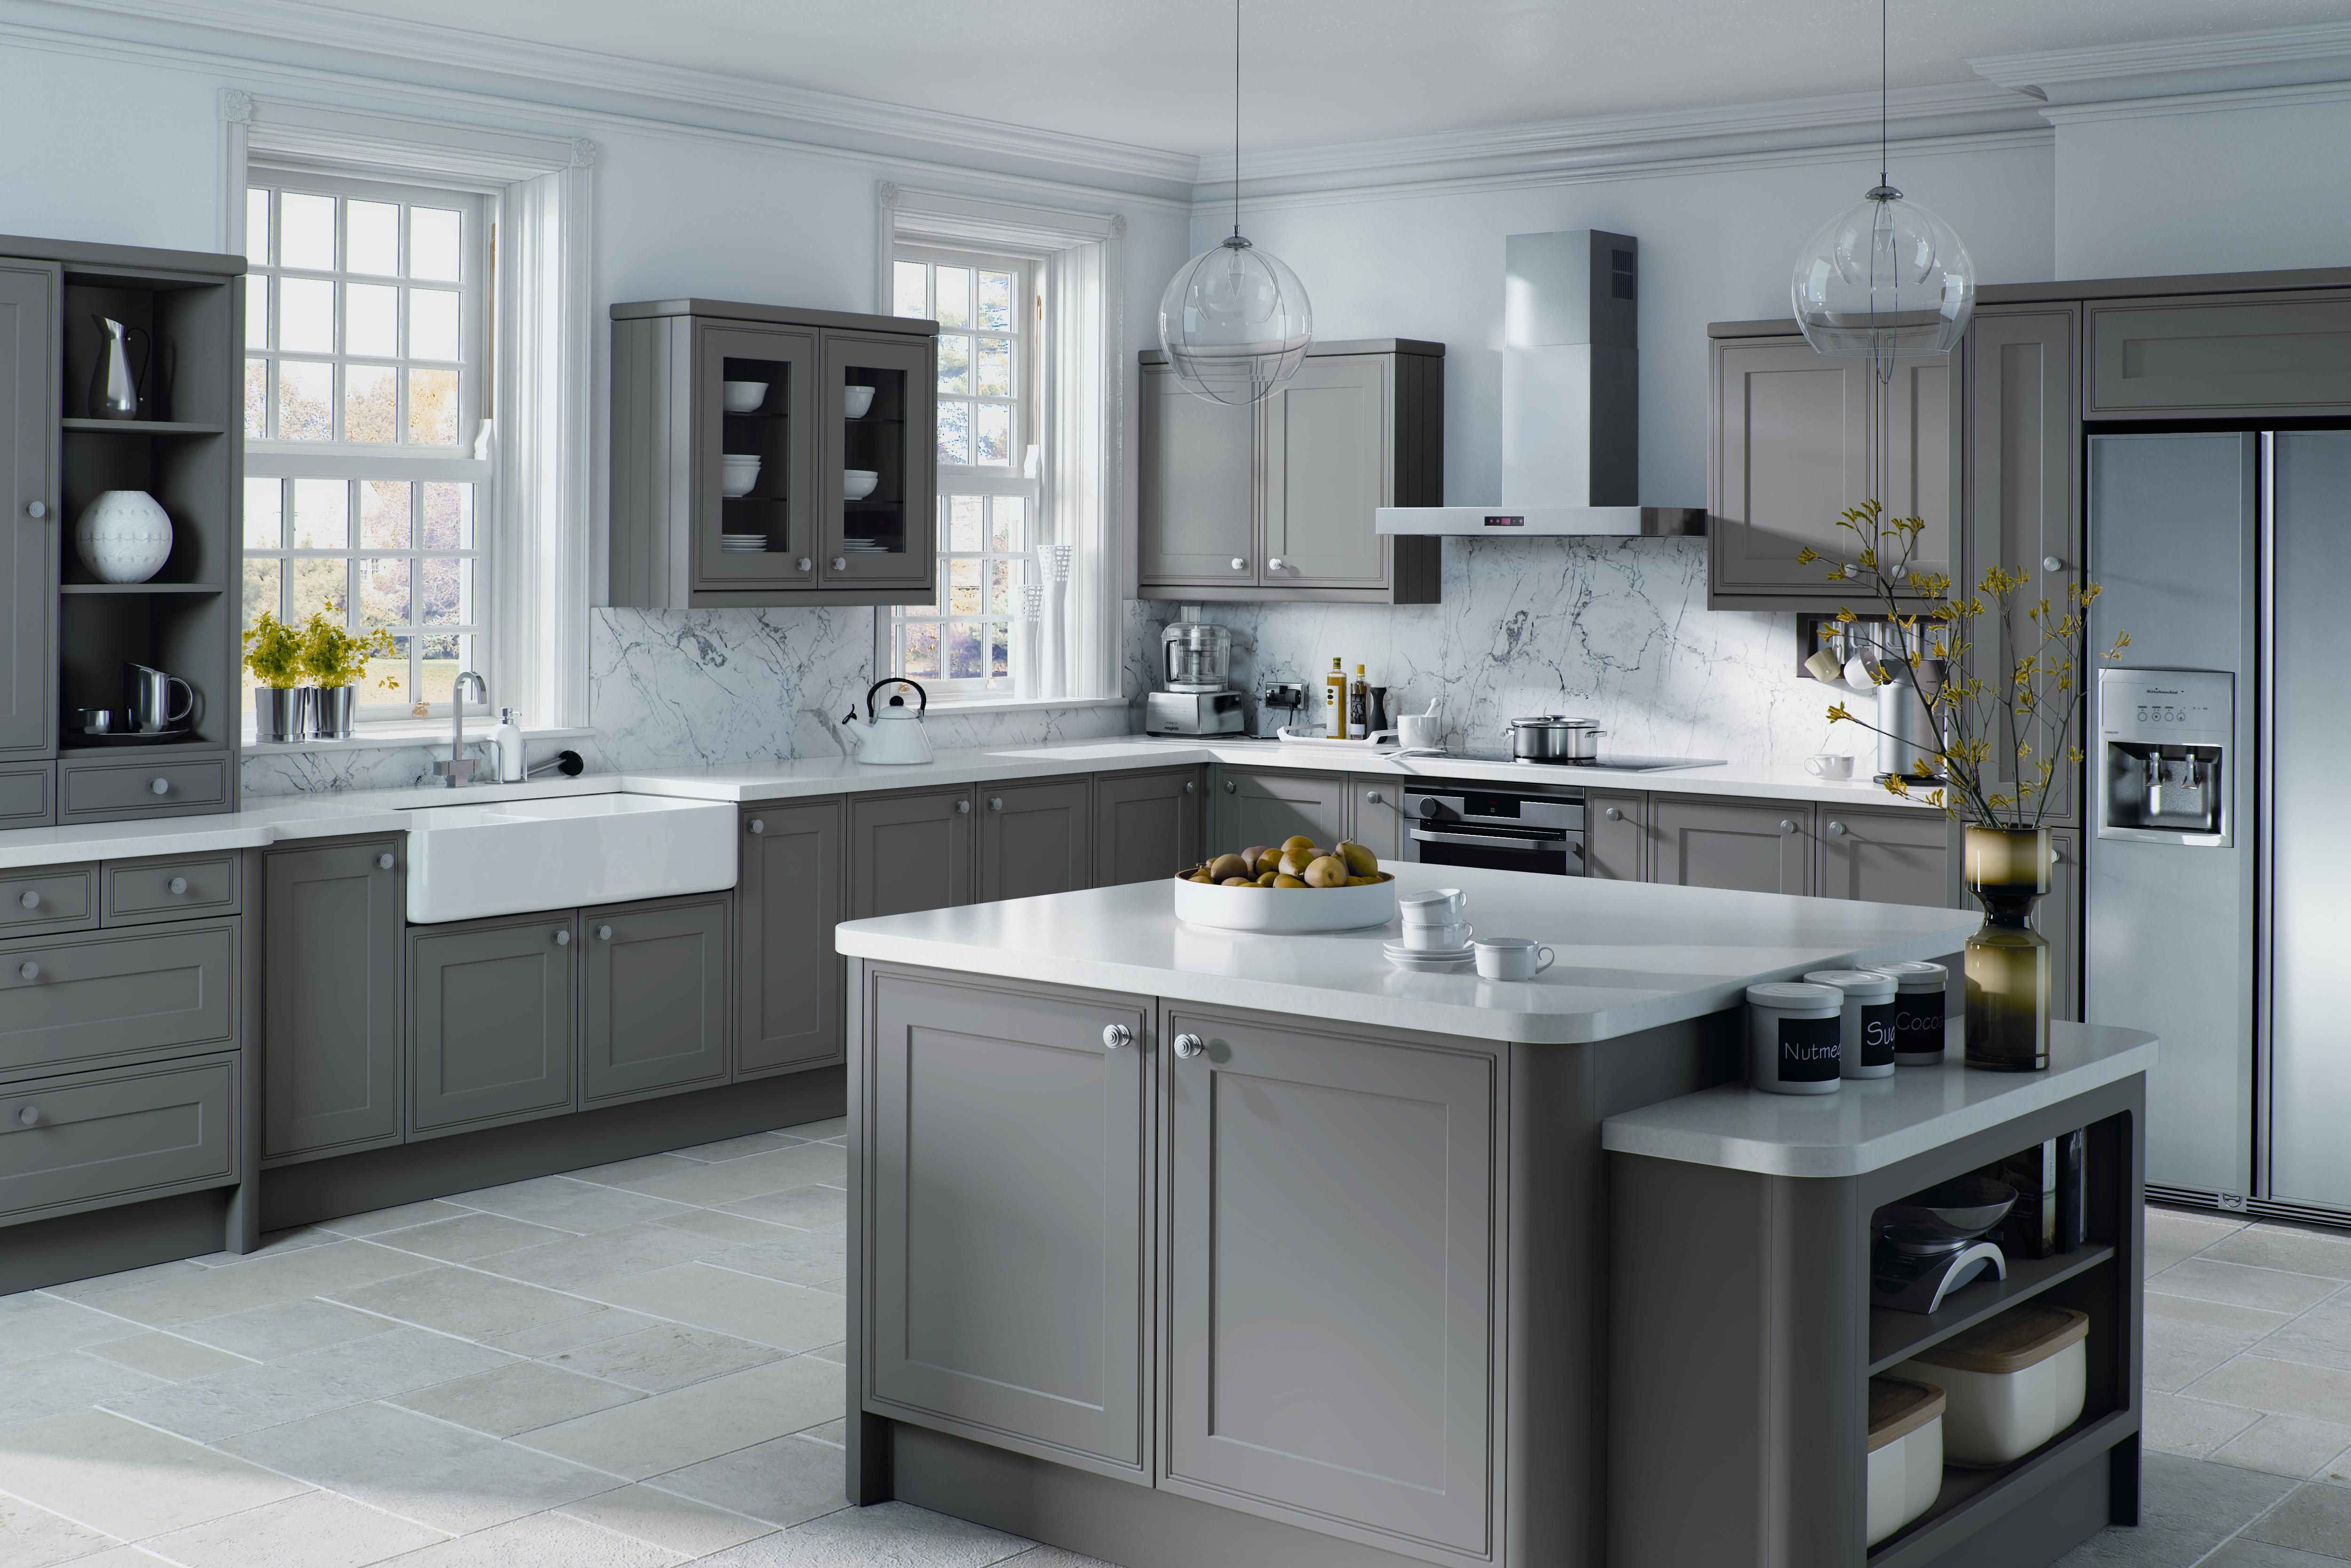 Being a leader in fitted kitchen designs, we have a wide